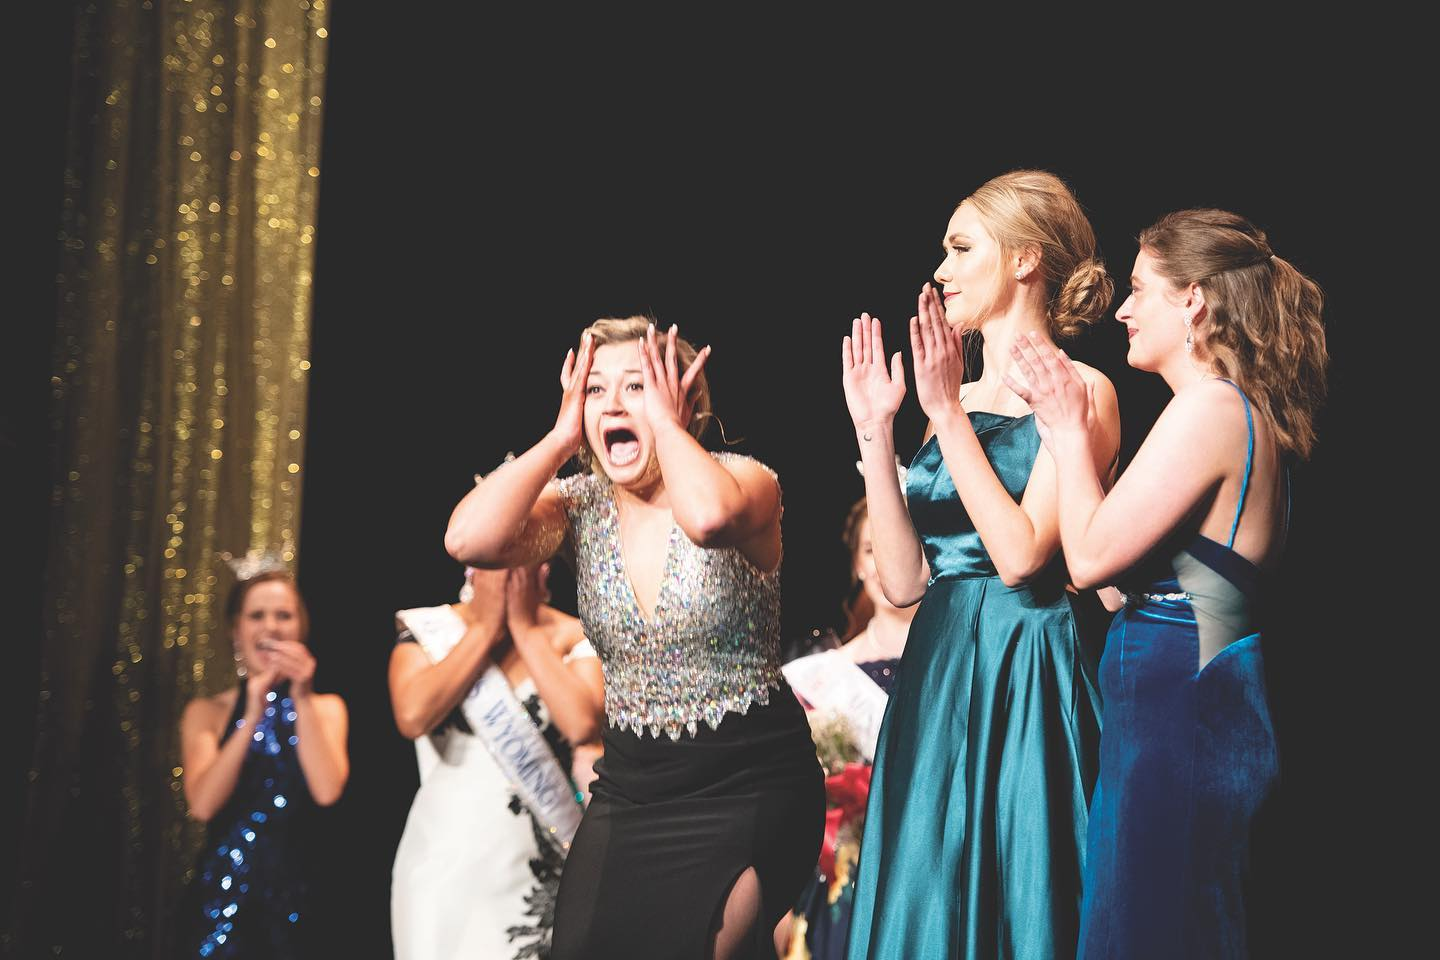 Moment Jordan Hardman finds out she is Miss Wyoming 2019!